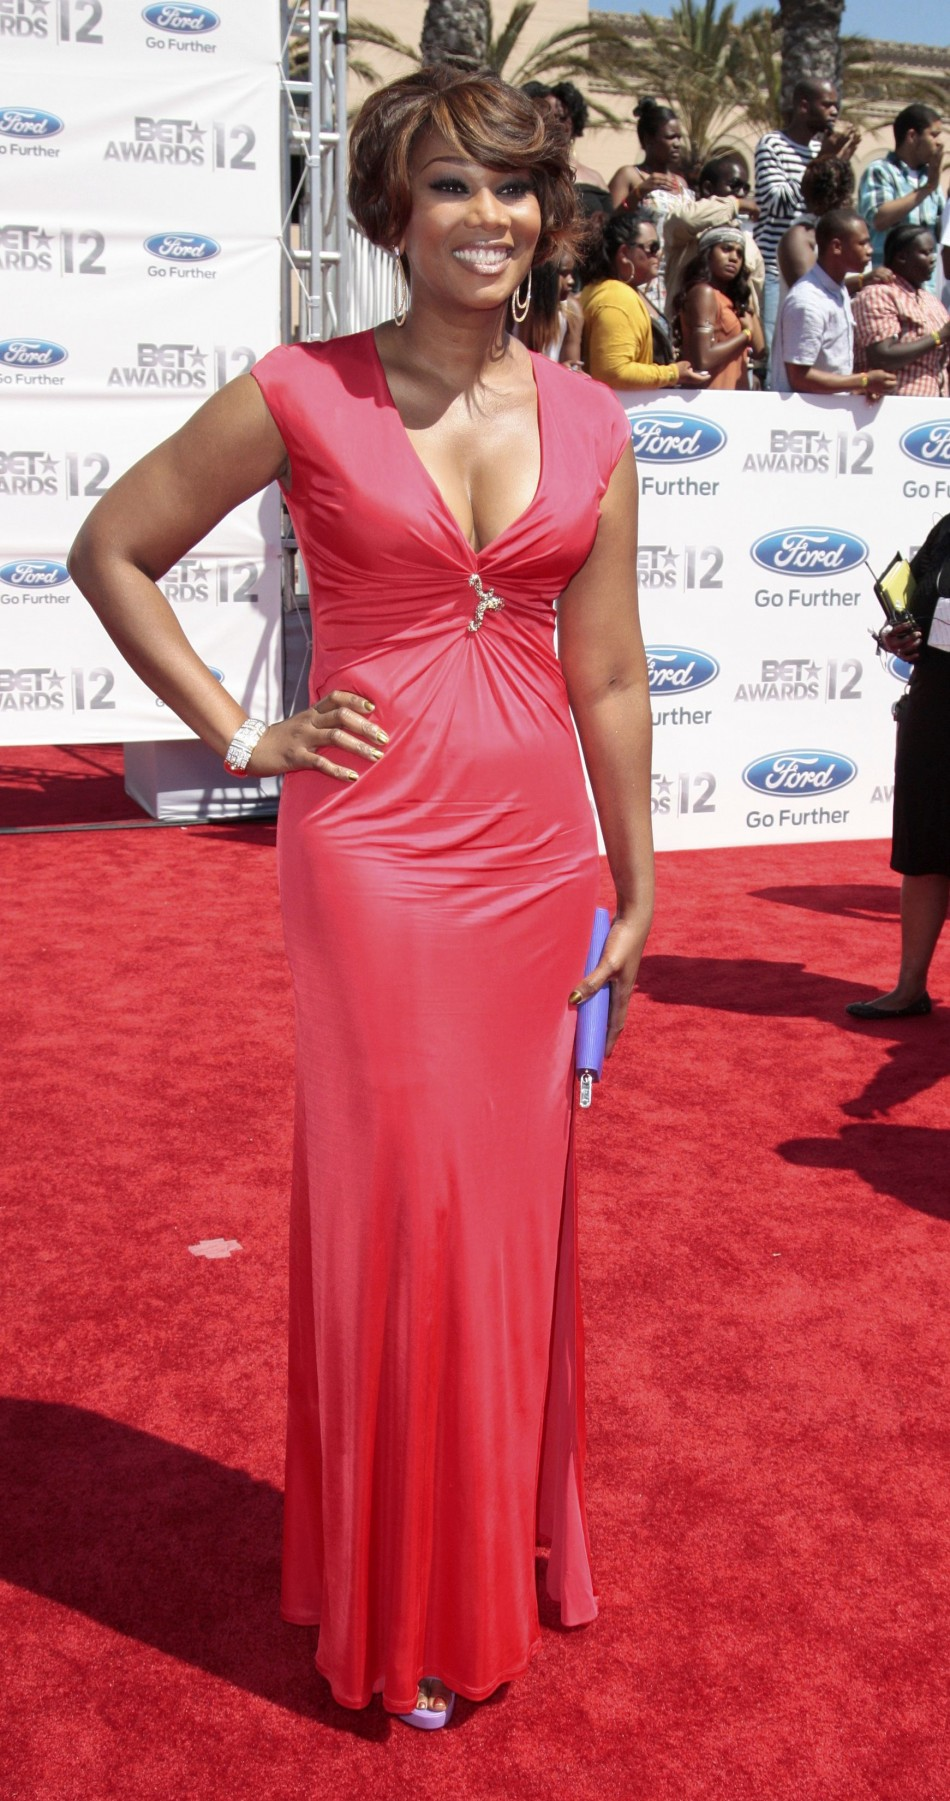 Singer Yolanda Adams arrives at the 2012 BET Awards in Los Angeles